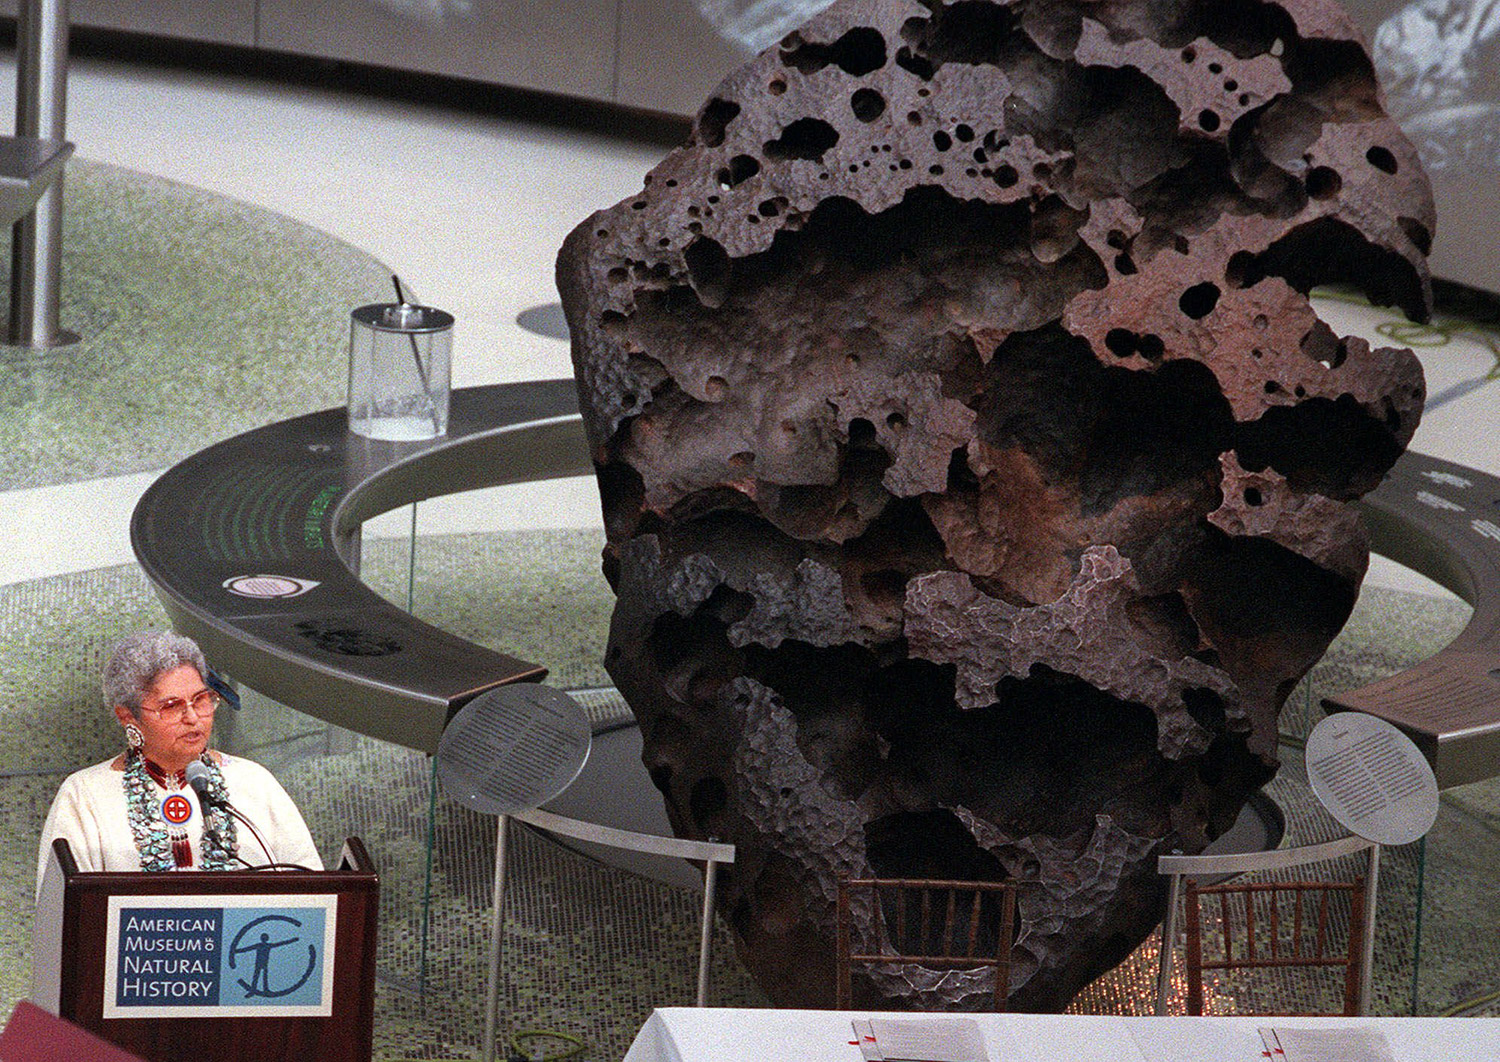 The 16-ton Willamette Meteorite is shown at New York's American Museum of Natural History. The 10,000-year-old meteorite was discovered near Portland, Oregon, nearly a century ago by a miner and purchased a few years later by a New York philanthropist who donated it to the museum, which agreed to share ownership with Oregon's Grand Ronde Tribal Council. Kathryn Harrison, chairwoman of the council at the time, is at left.